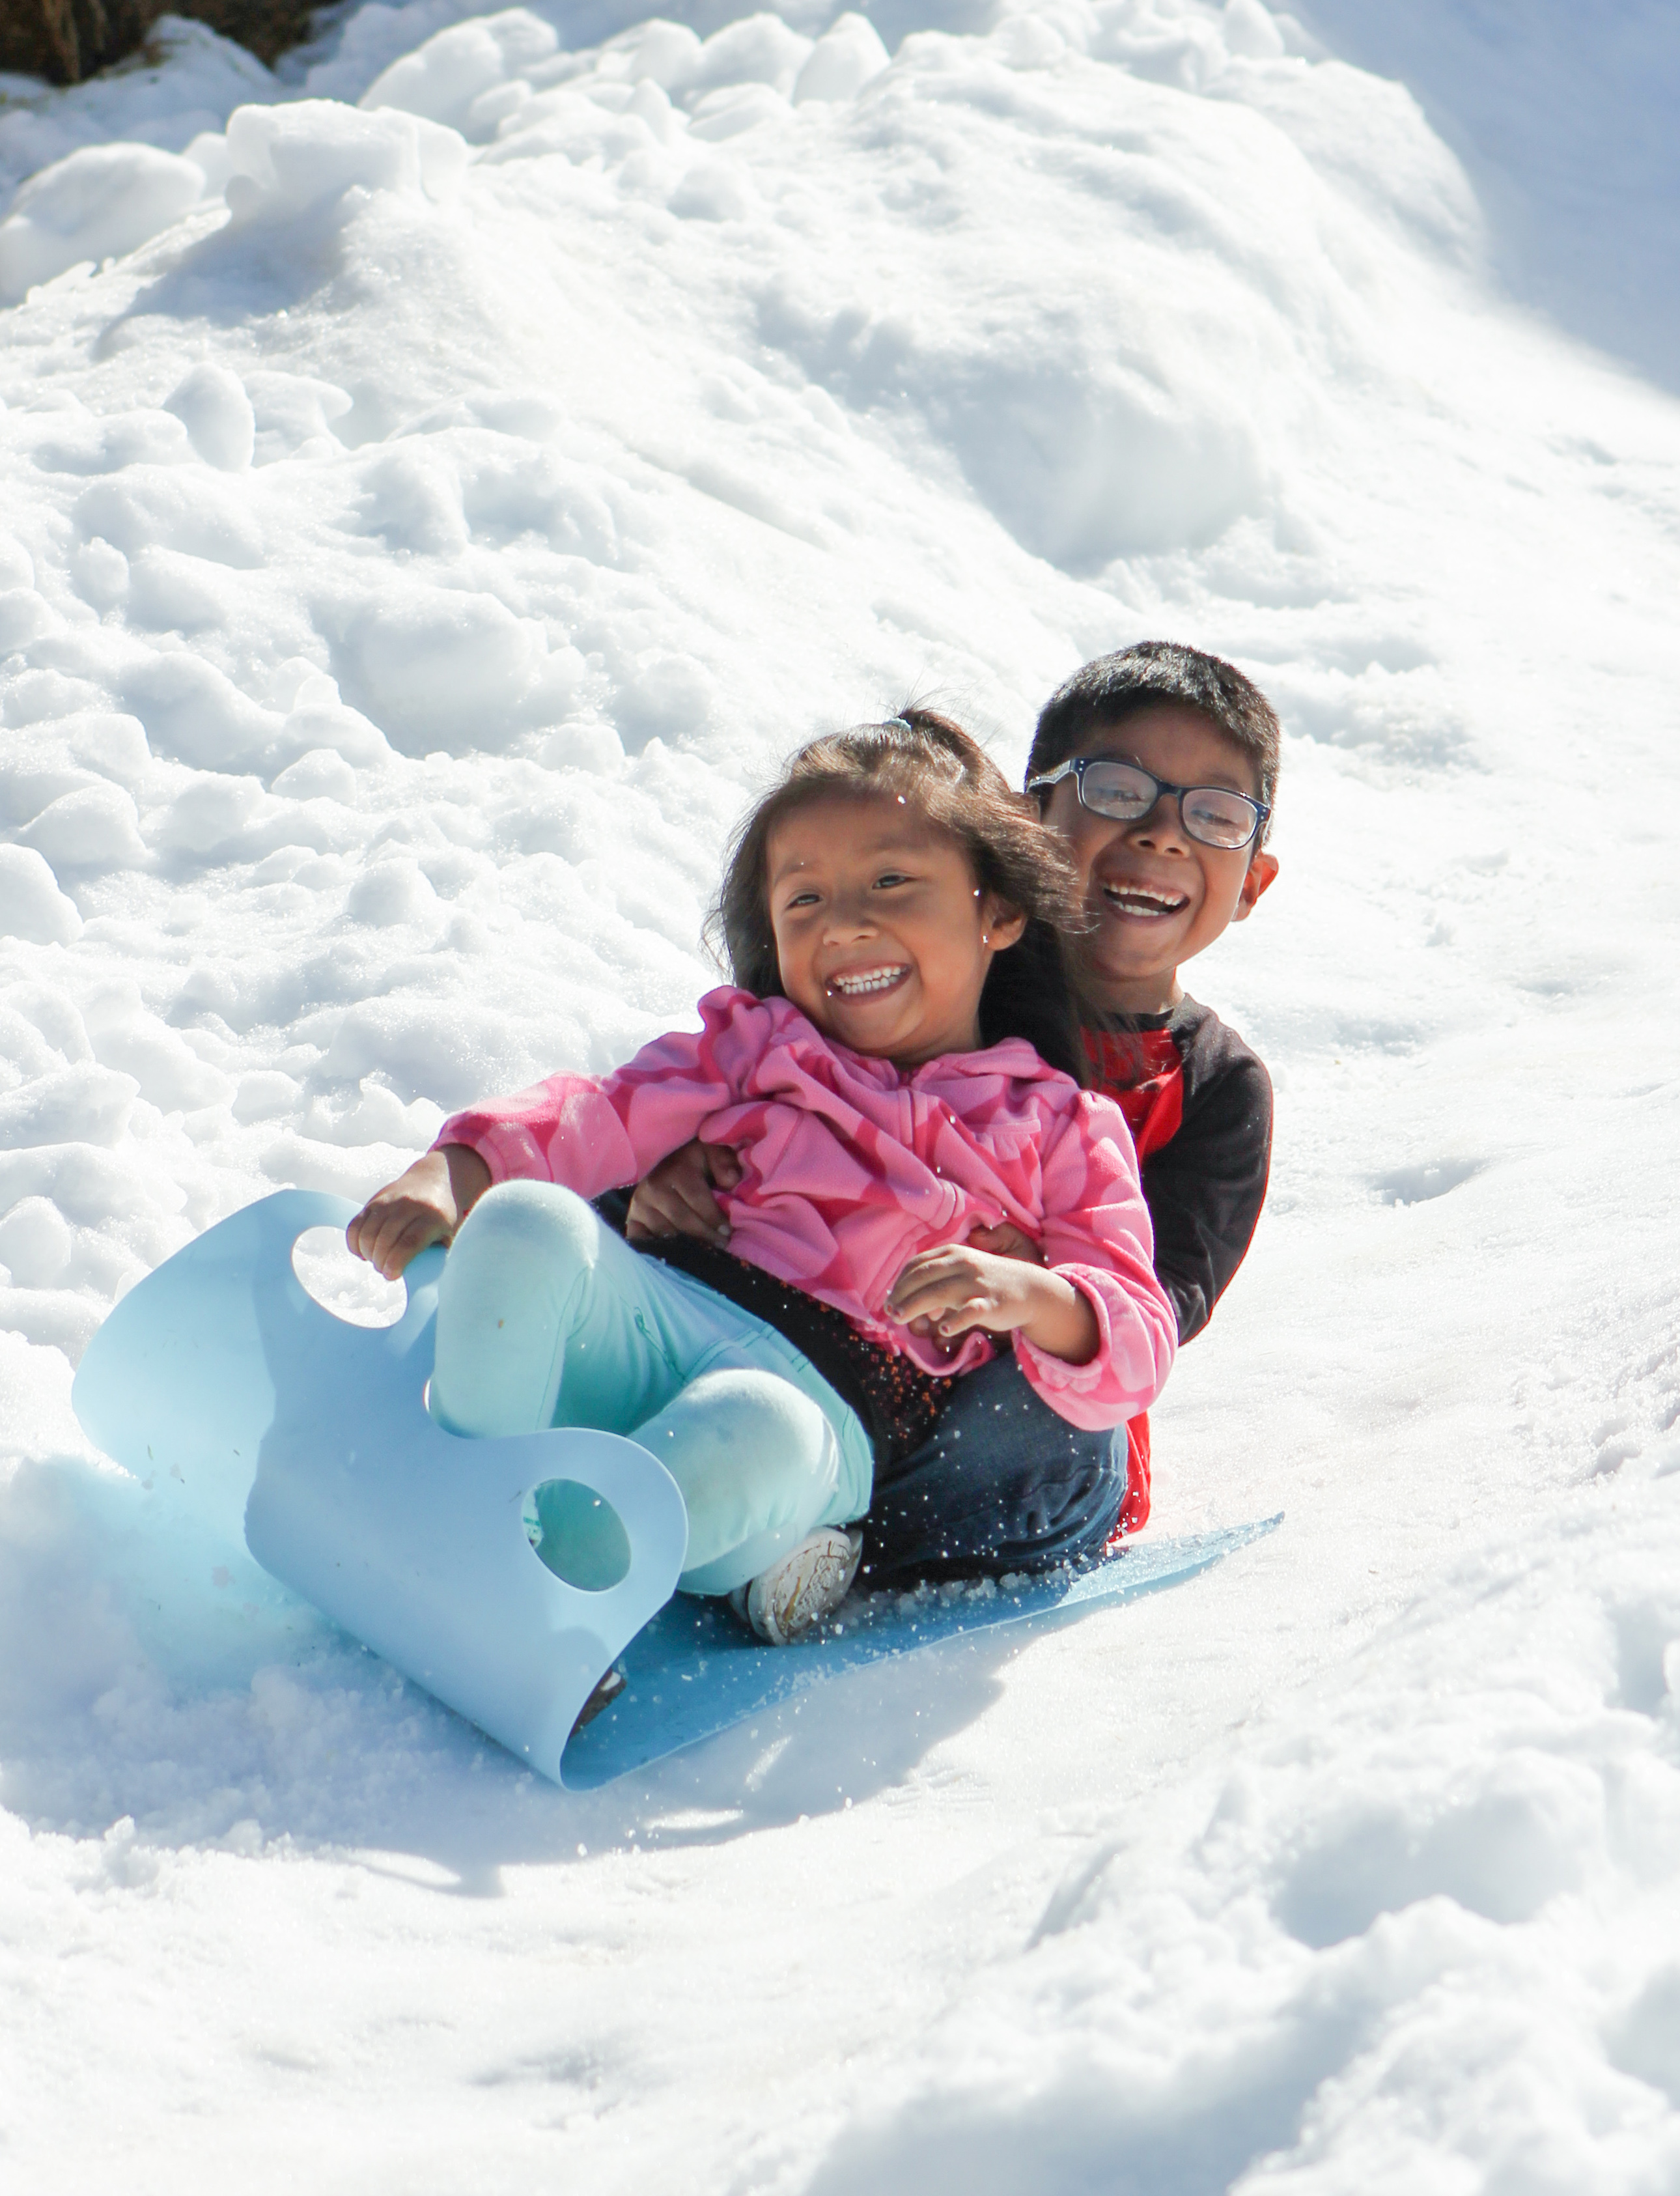 Brother and Sister Sledding Snow Hill Poway Community Park Winter Festival